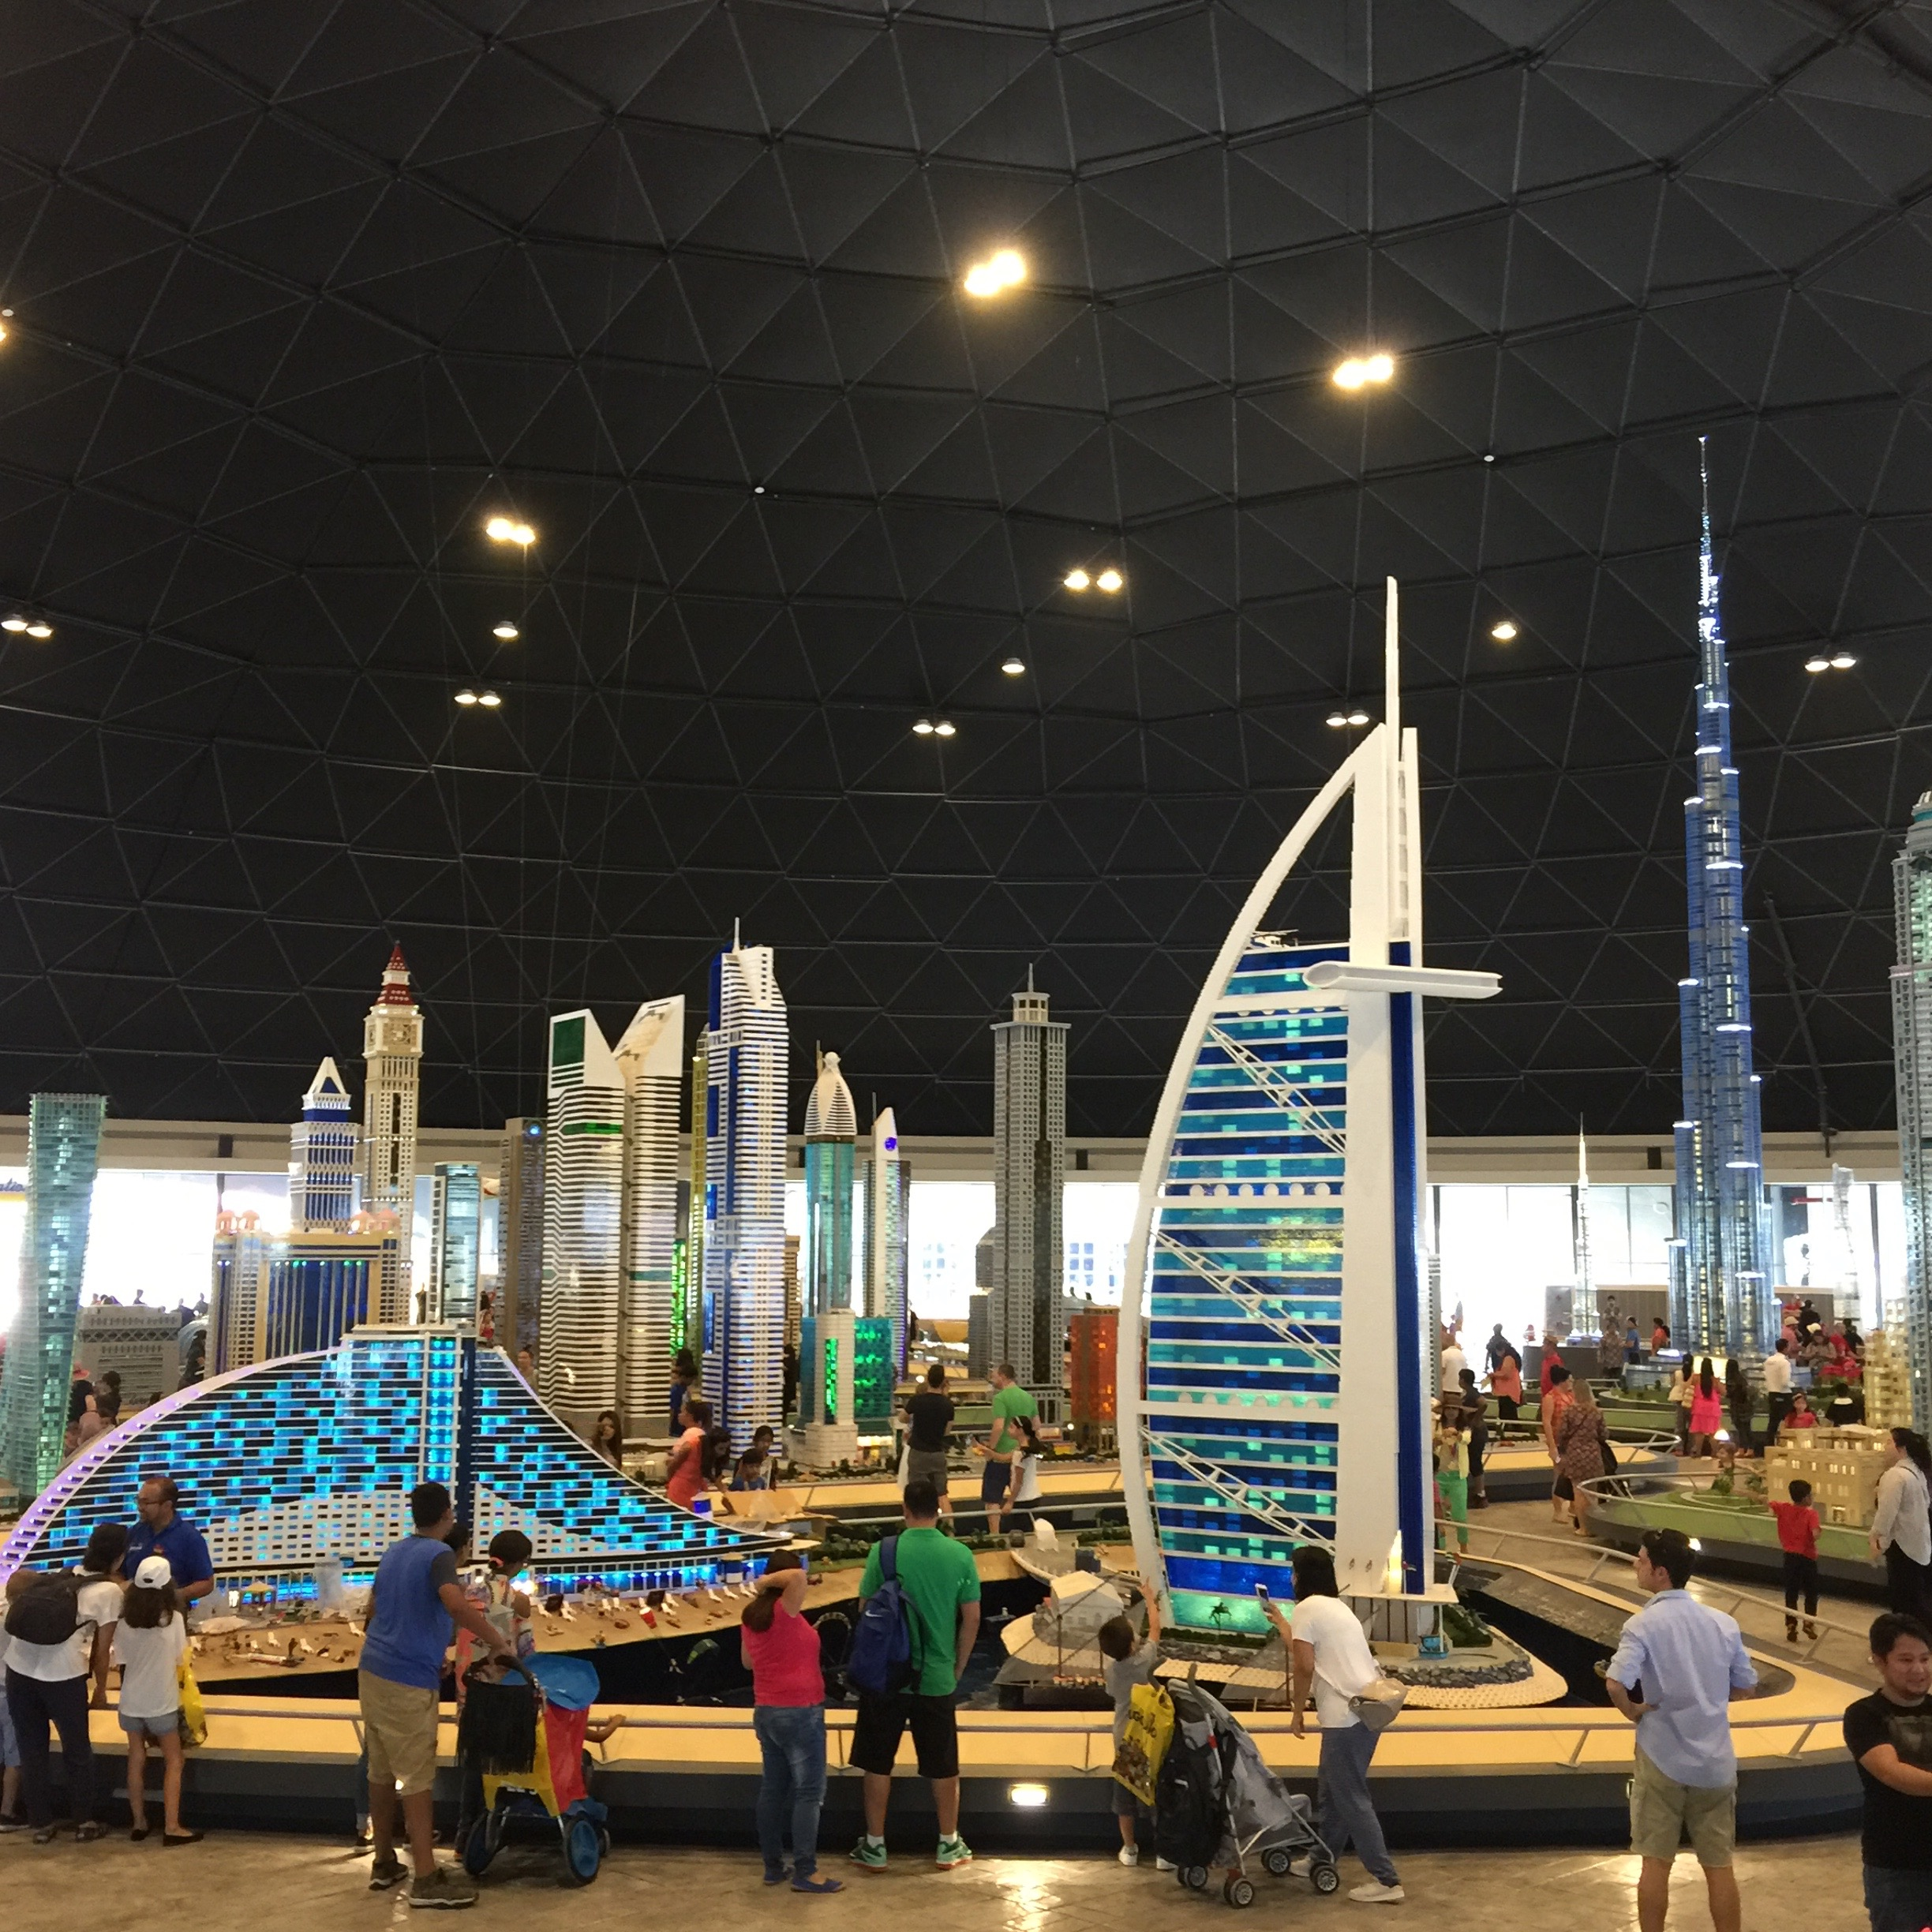 Dubai parks resorts inside legoland dubai 3 days for Videos dubai